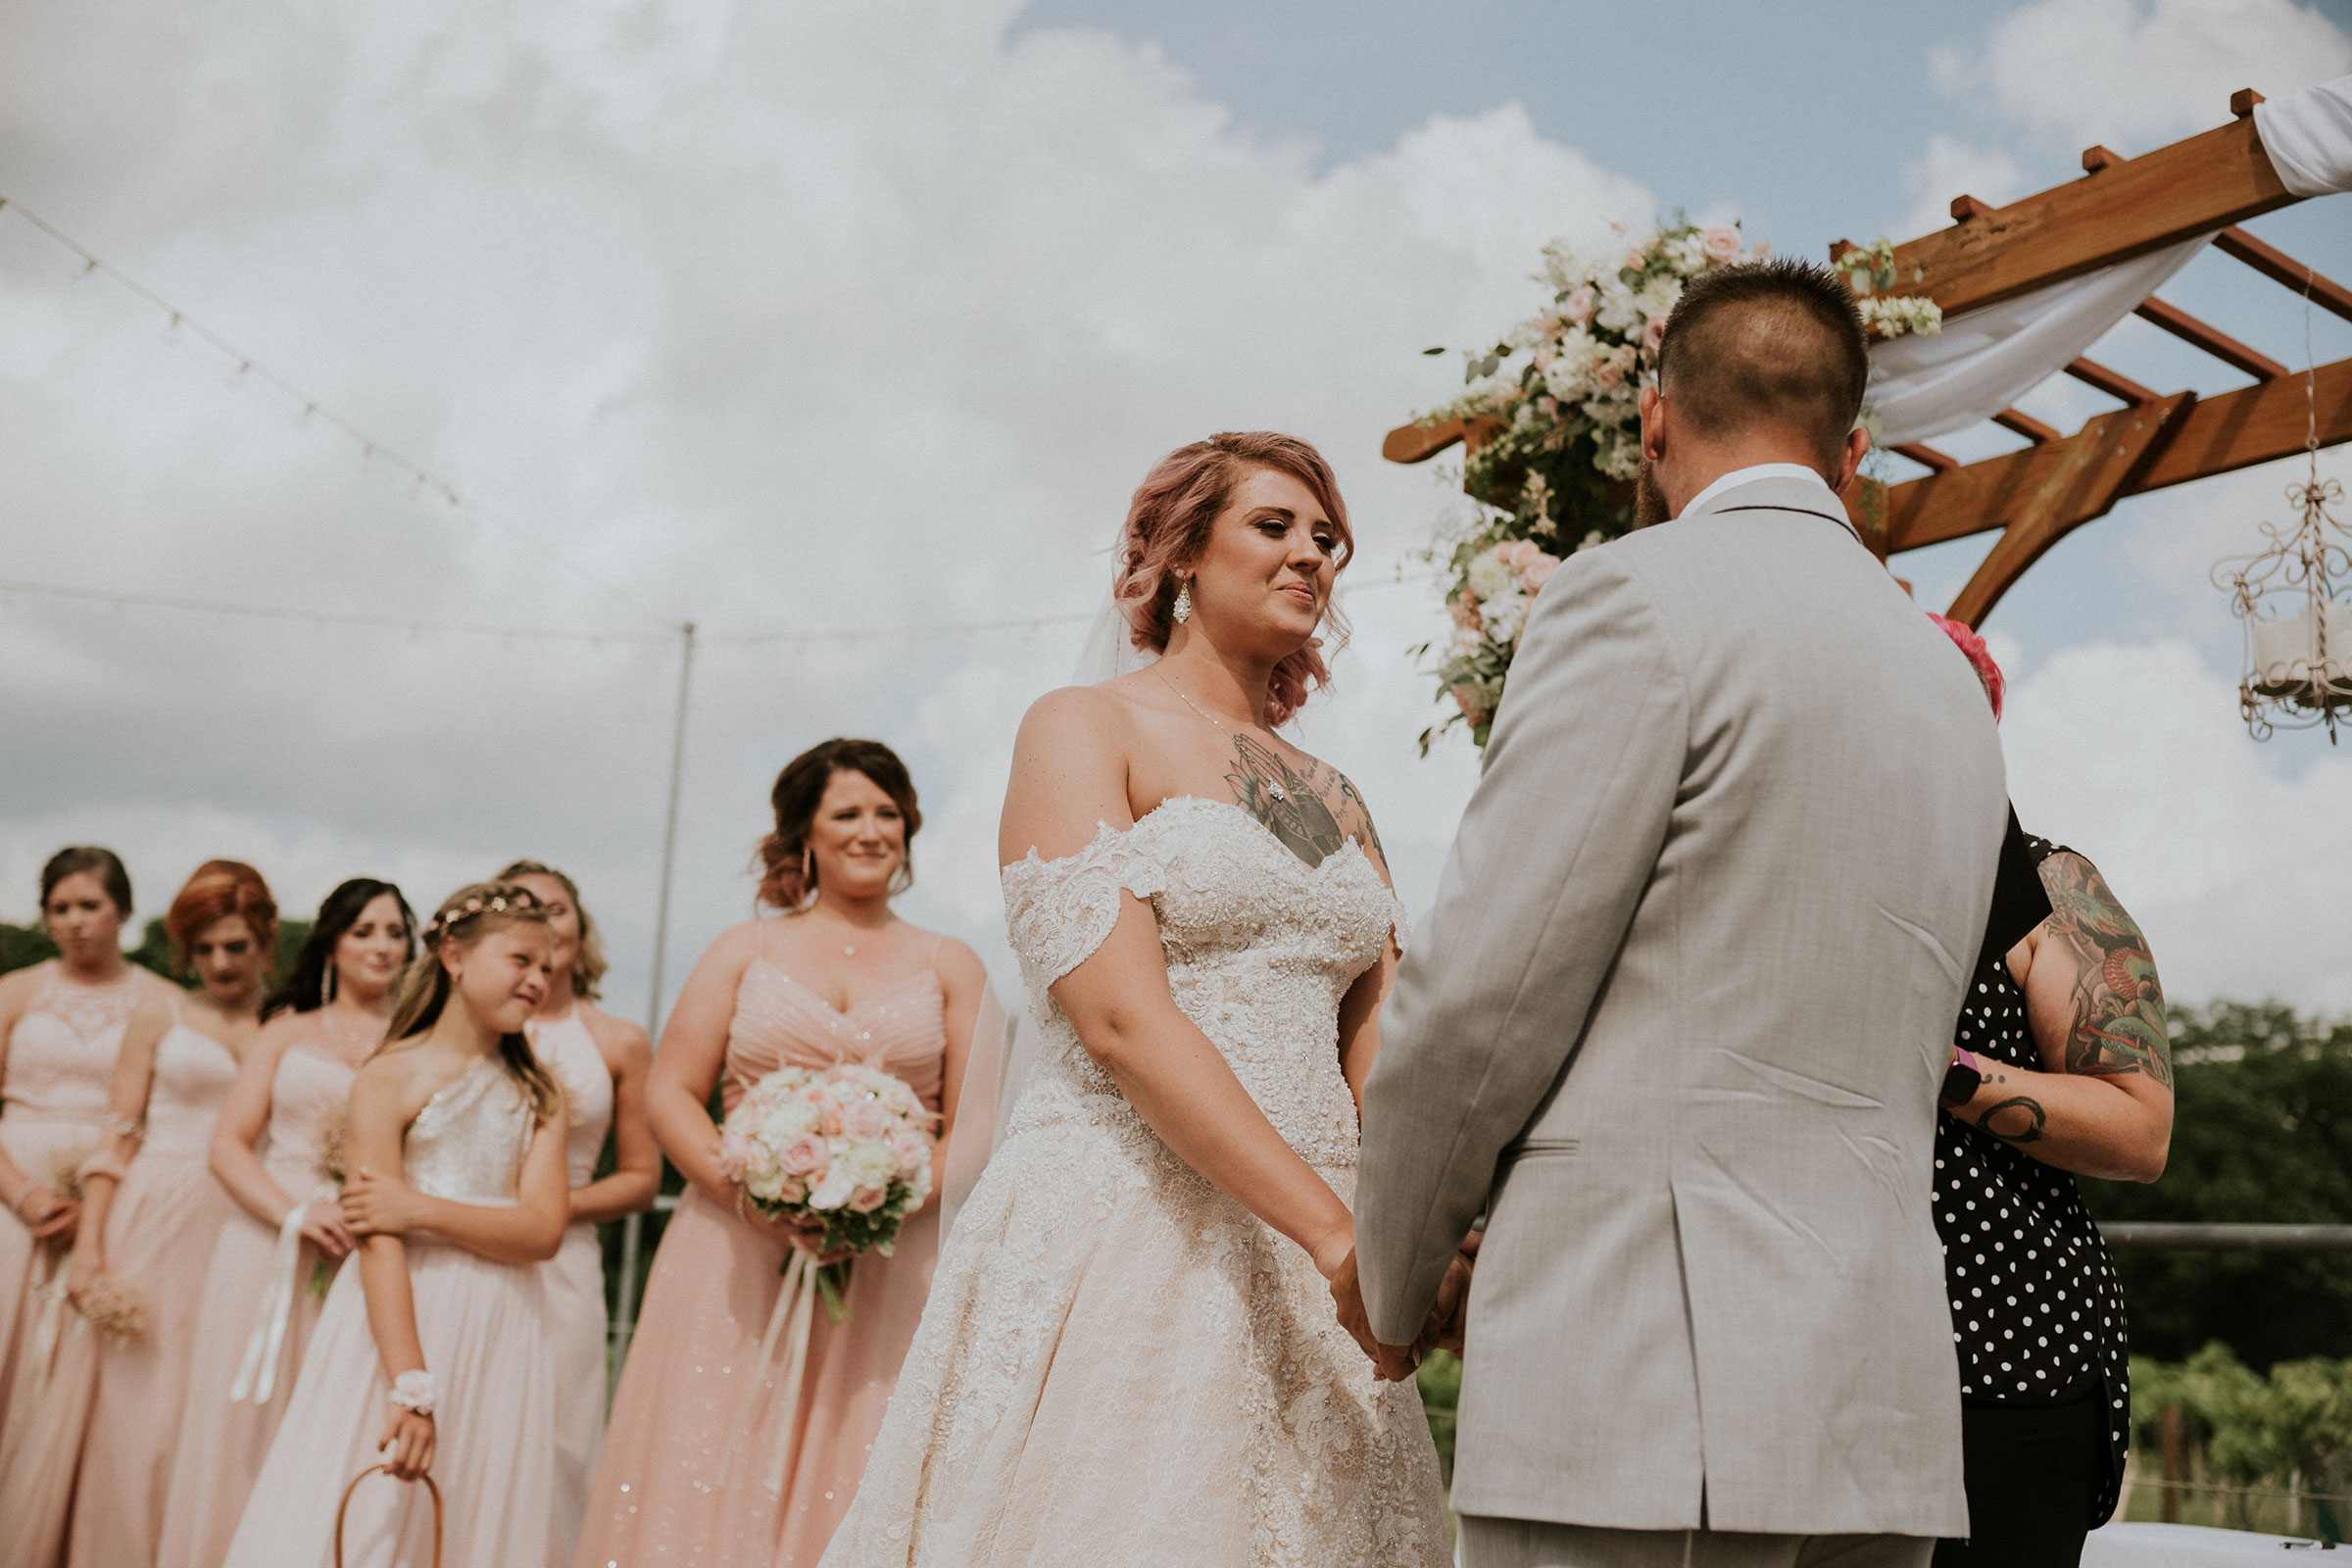 bride-holding-grooms-hand-during-ceremony-wedding-summerset-winery-indianola-iowa-raelyn-ramey-photography.jpg